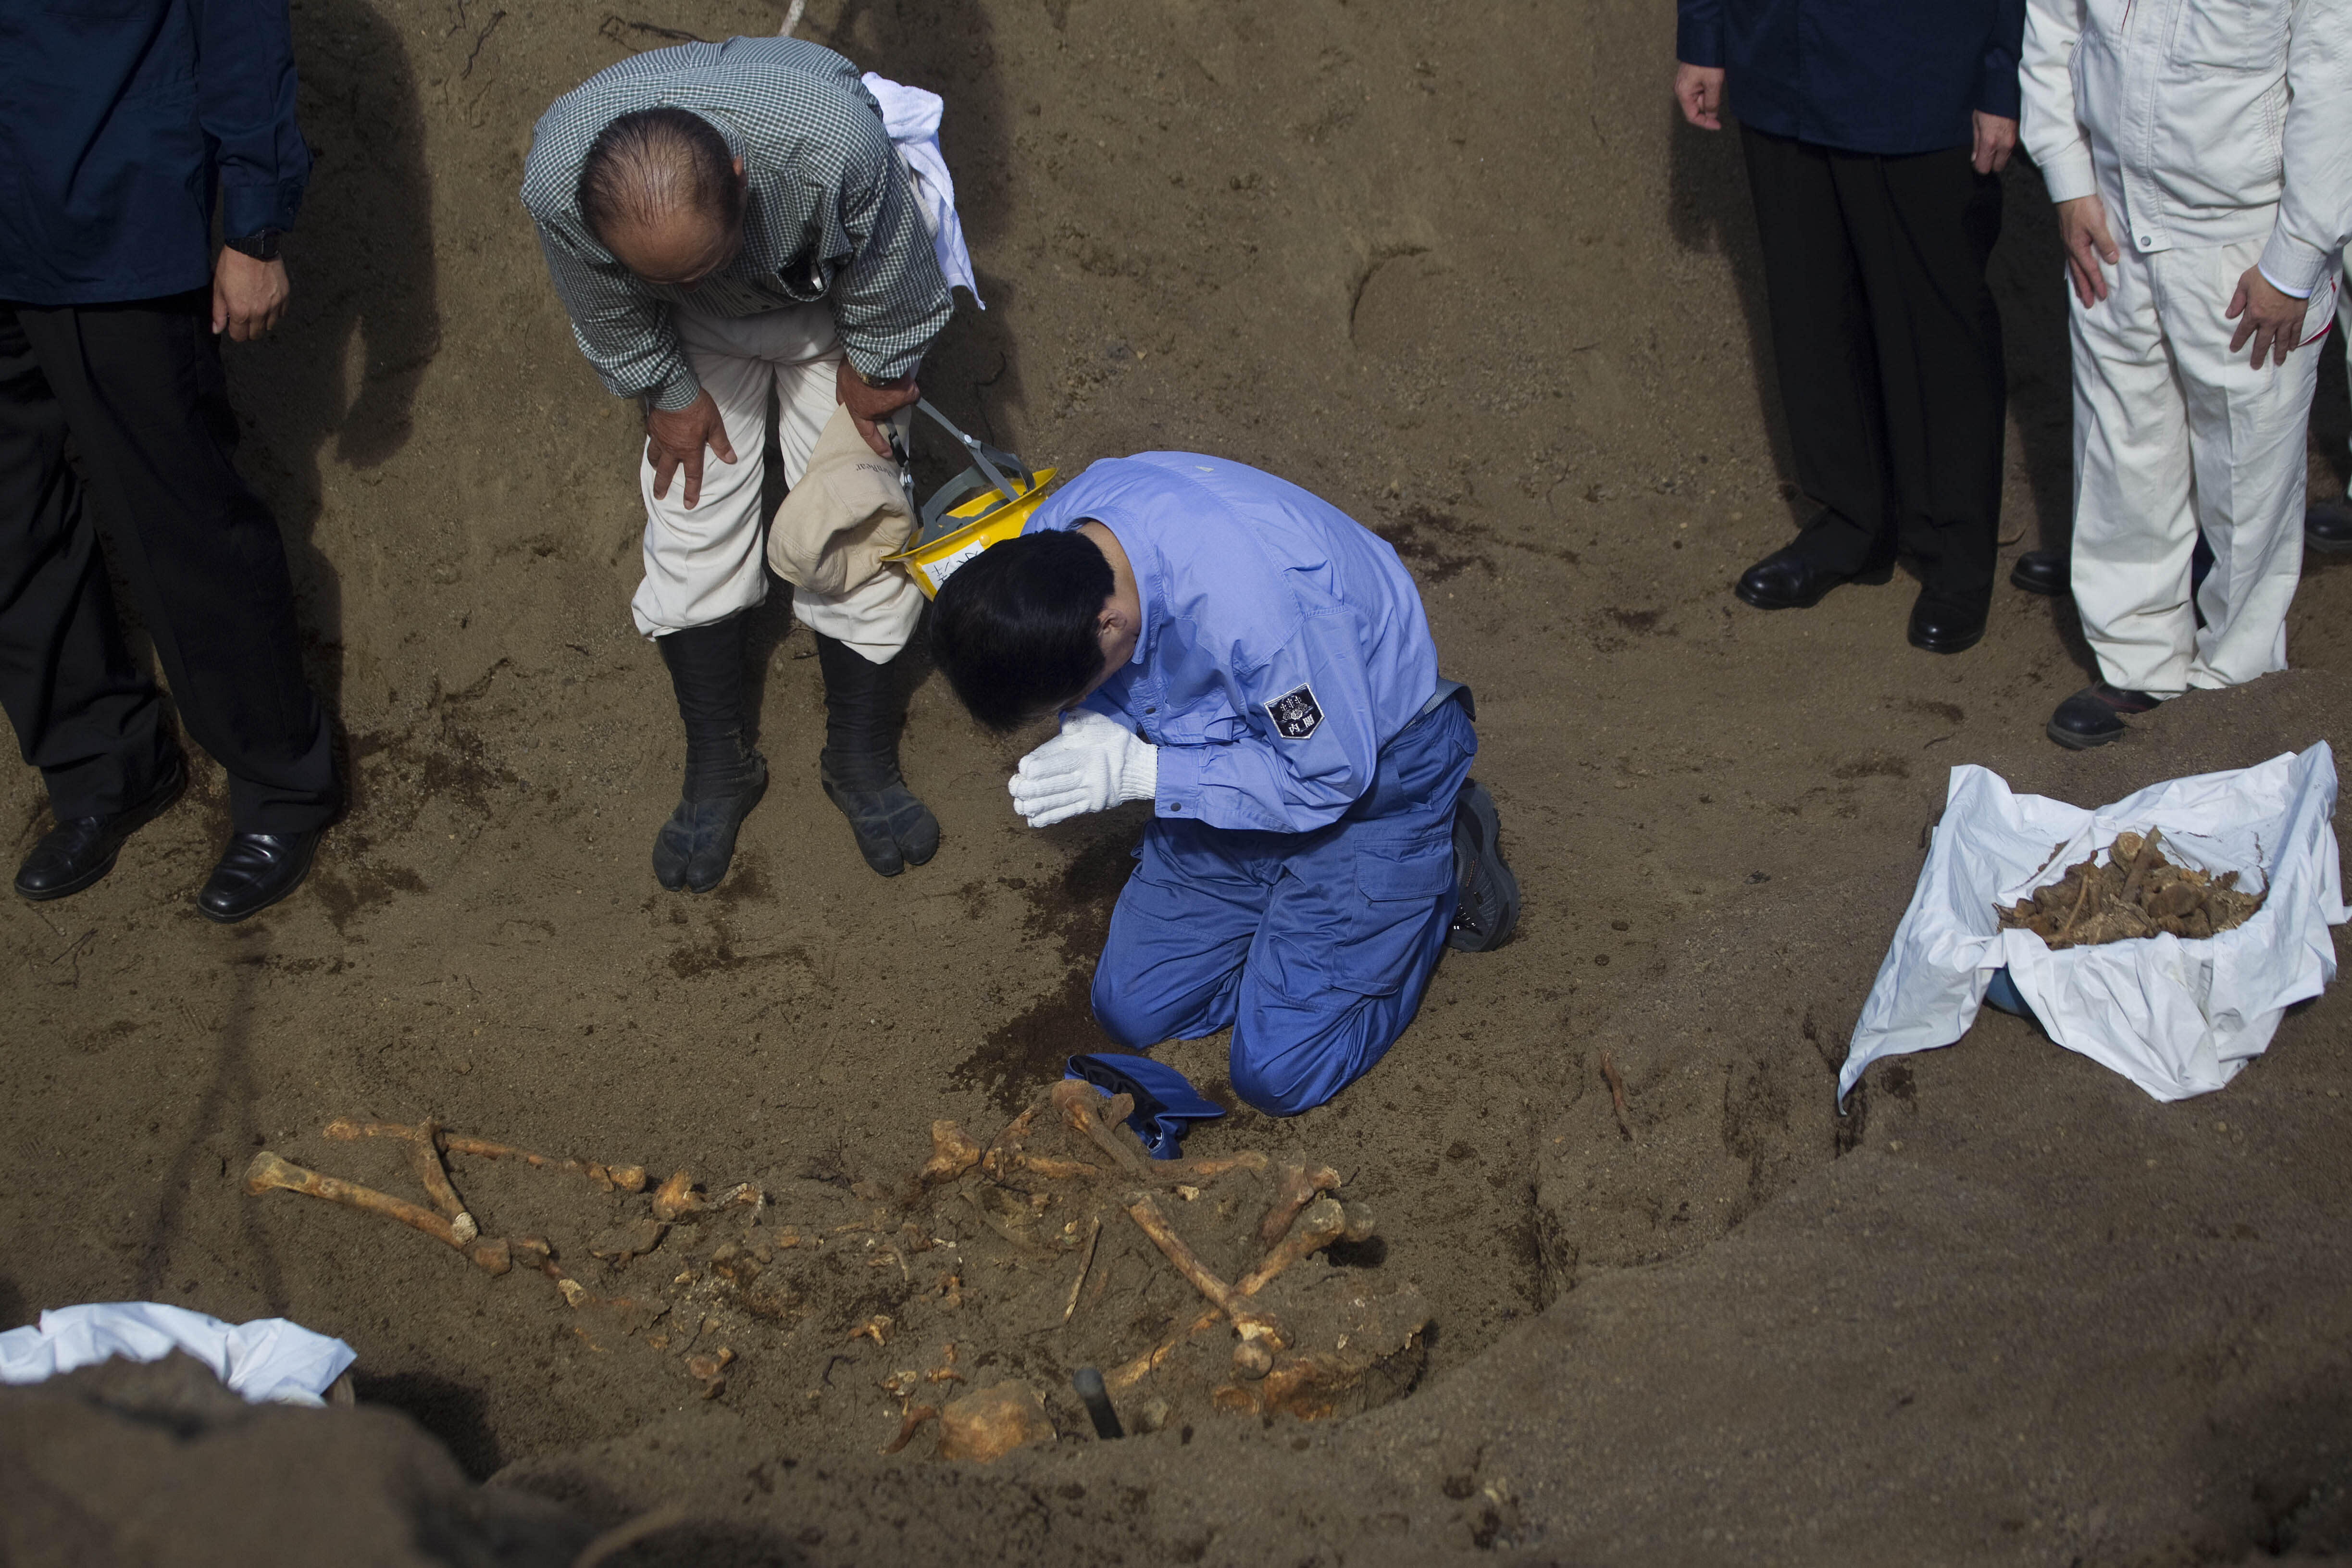 FILE - In this Dec. 14, 2010, file photo, then Japanese Prime Minister Naoto Kan bows at a mass grave site on Iwo Jima island where officials discovered the remains of Japanese soldiers who died in the battle for Iwo Jima. Seventy-five years after the end of World War II, more than 1 million Japanese war dead are scattered throughout Asia, where the legacy of Japanese aggression still hampers recovery efforts. The missing Japanese make up about half of the 2.4 million soldiers who died overseas during Japan's military rampage across Asia in the early 20th century.(AP Photo/David Guttenfelder, File)